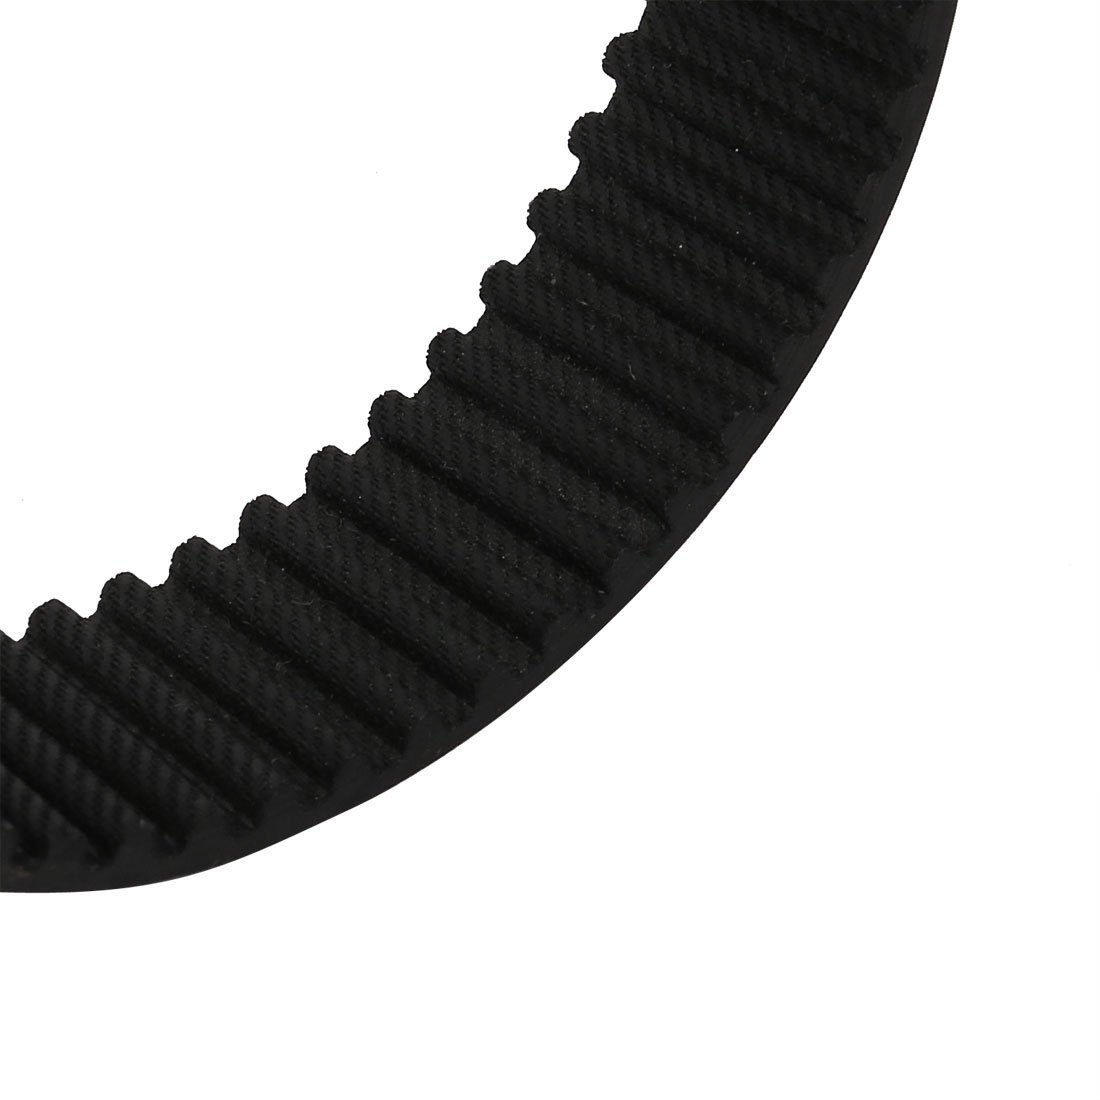 uxcell HTD5M245 Rubber Timing Belt Synchronous Closed Loop Timing Belt Pulleys 15mm Width a17091900ux1149